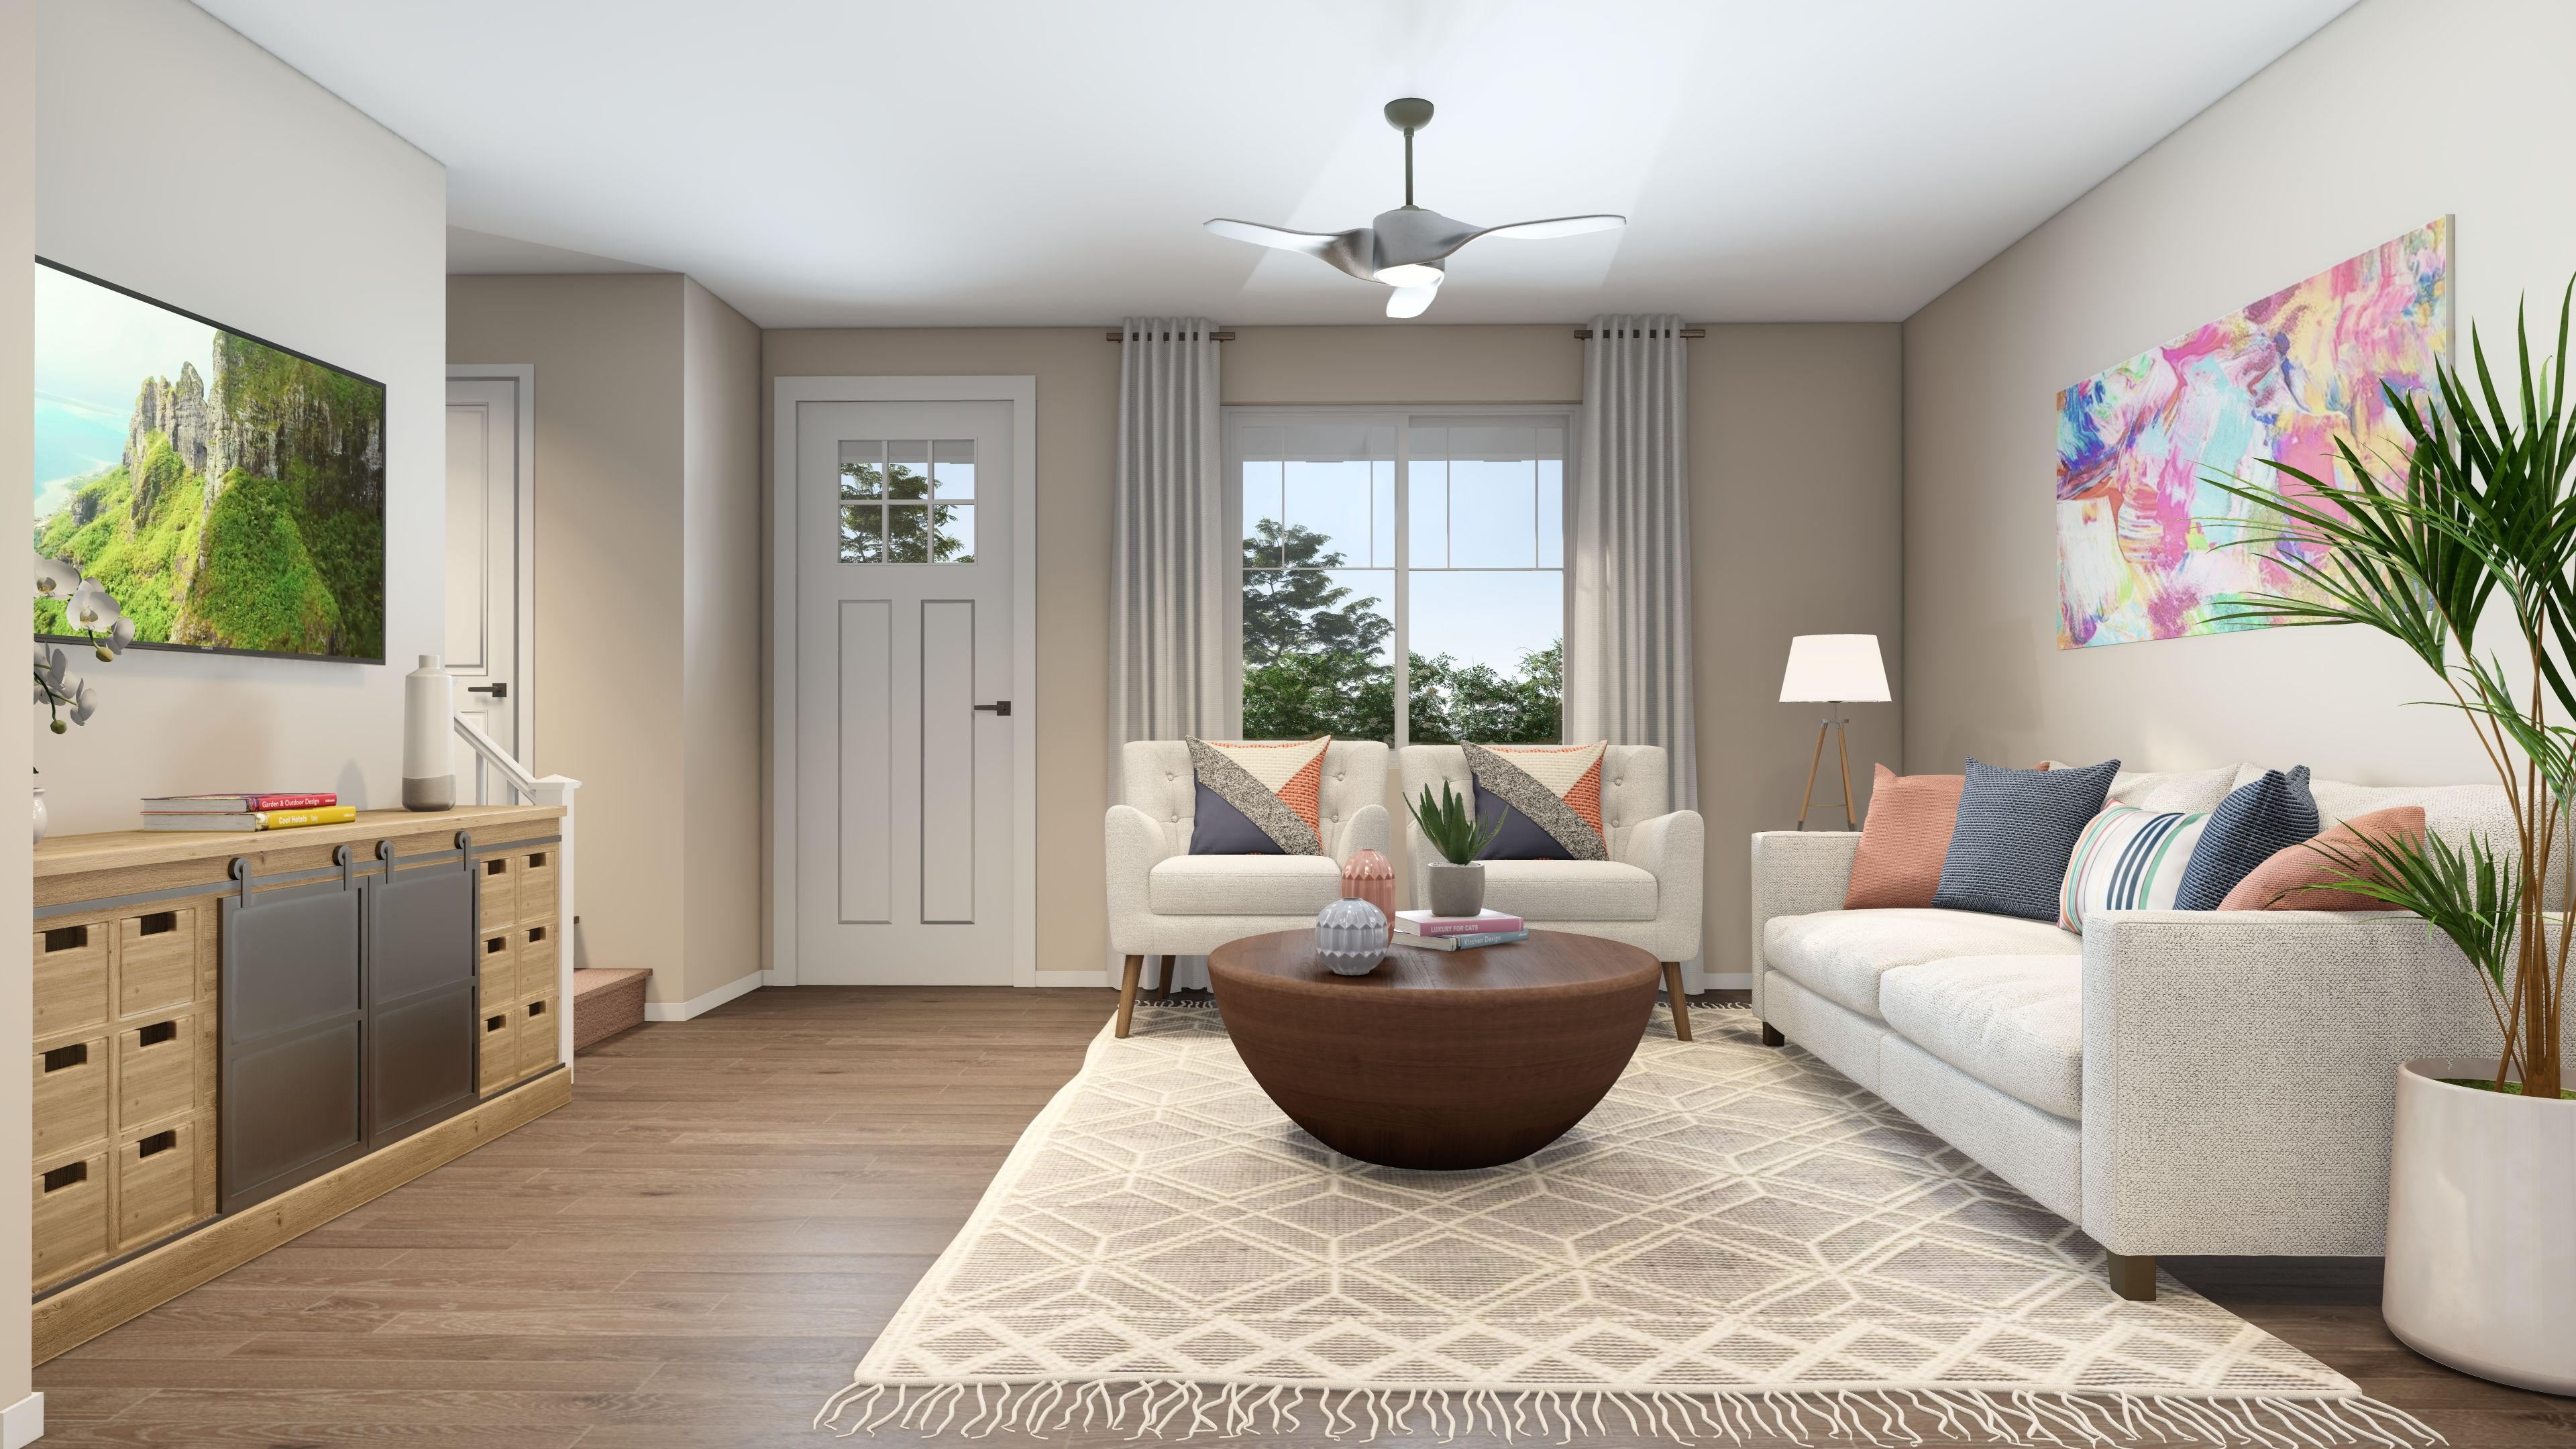 Living Area featured in the Plan 2 By R at Righetti in San Luis Obispo, CA